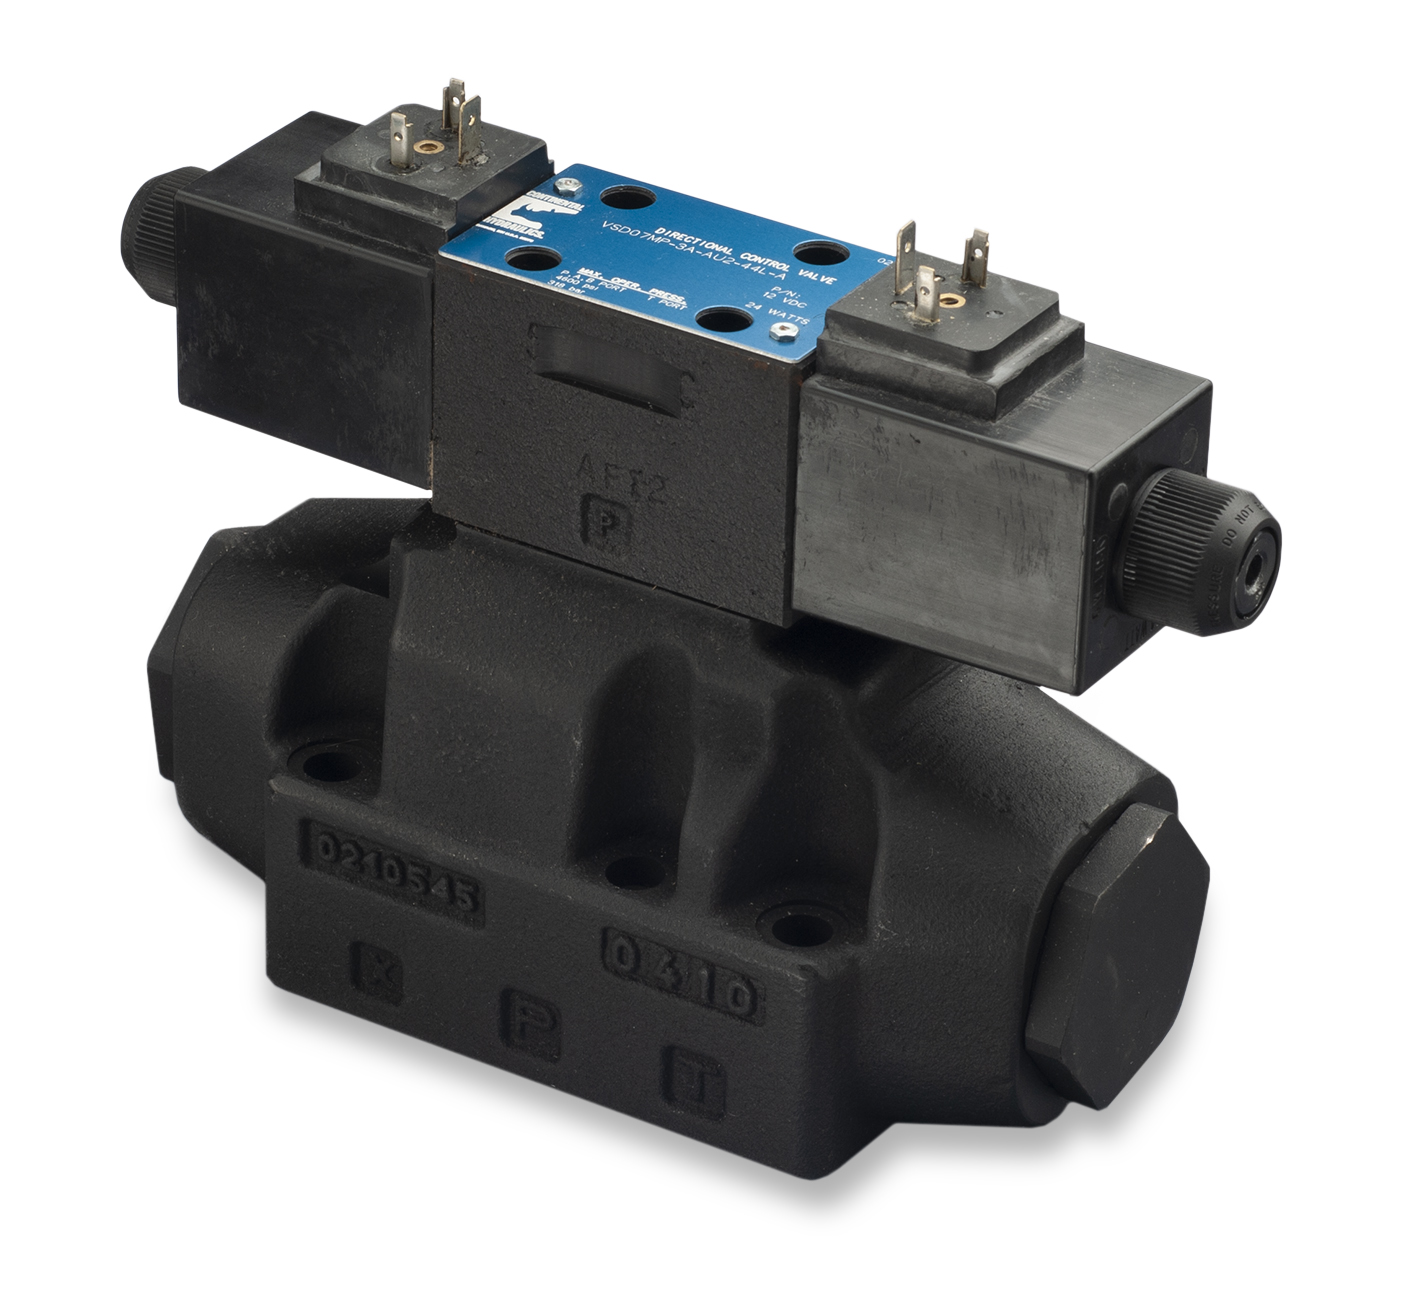 VSD05AM directional control valve; white background